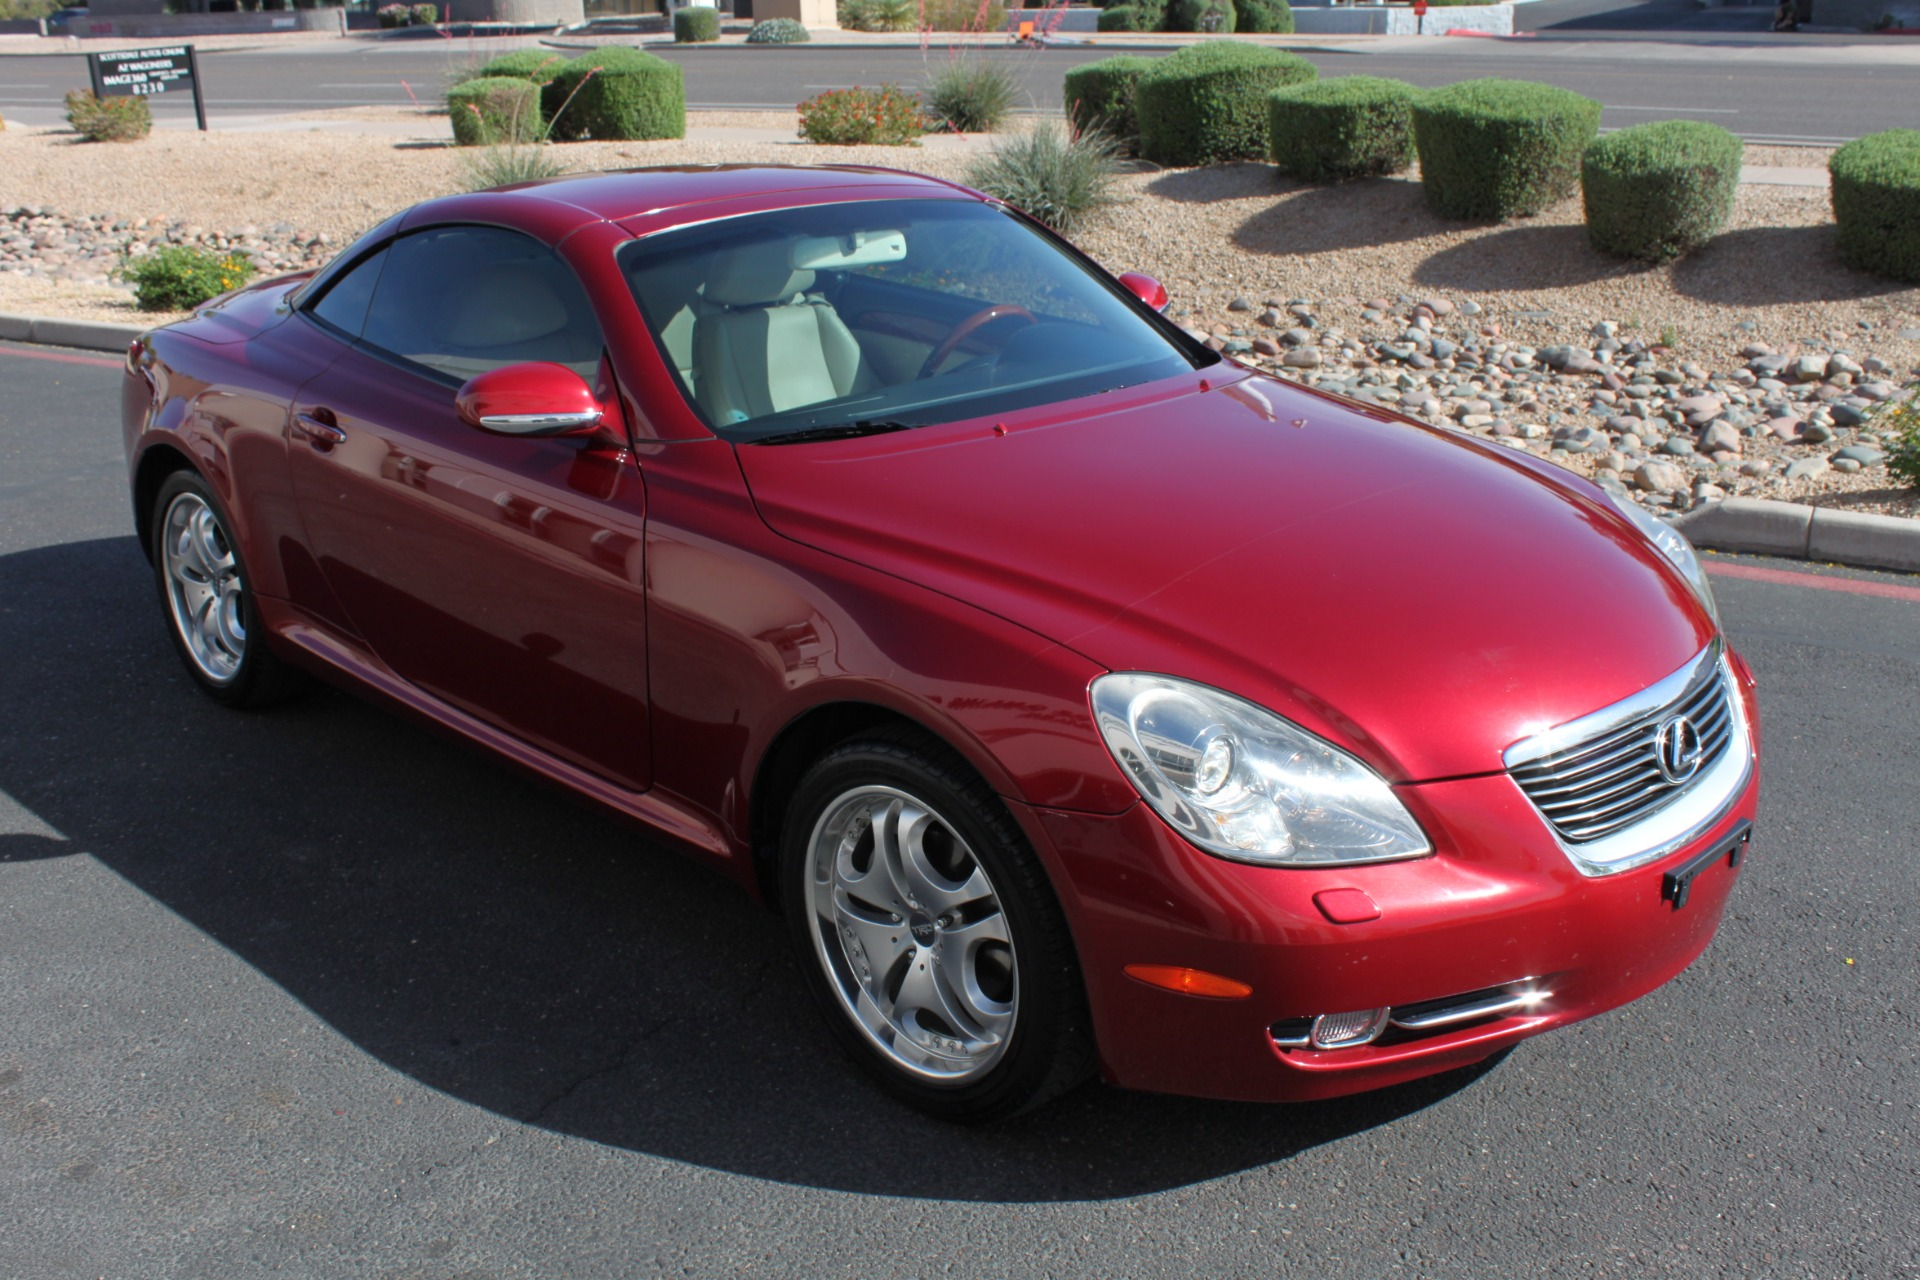 Used-2006-Lexus-SC-430-Chevrolet